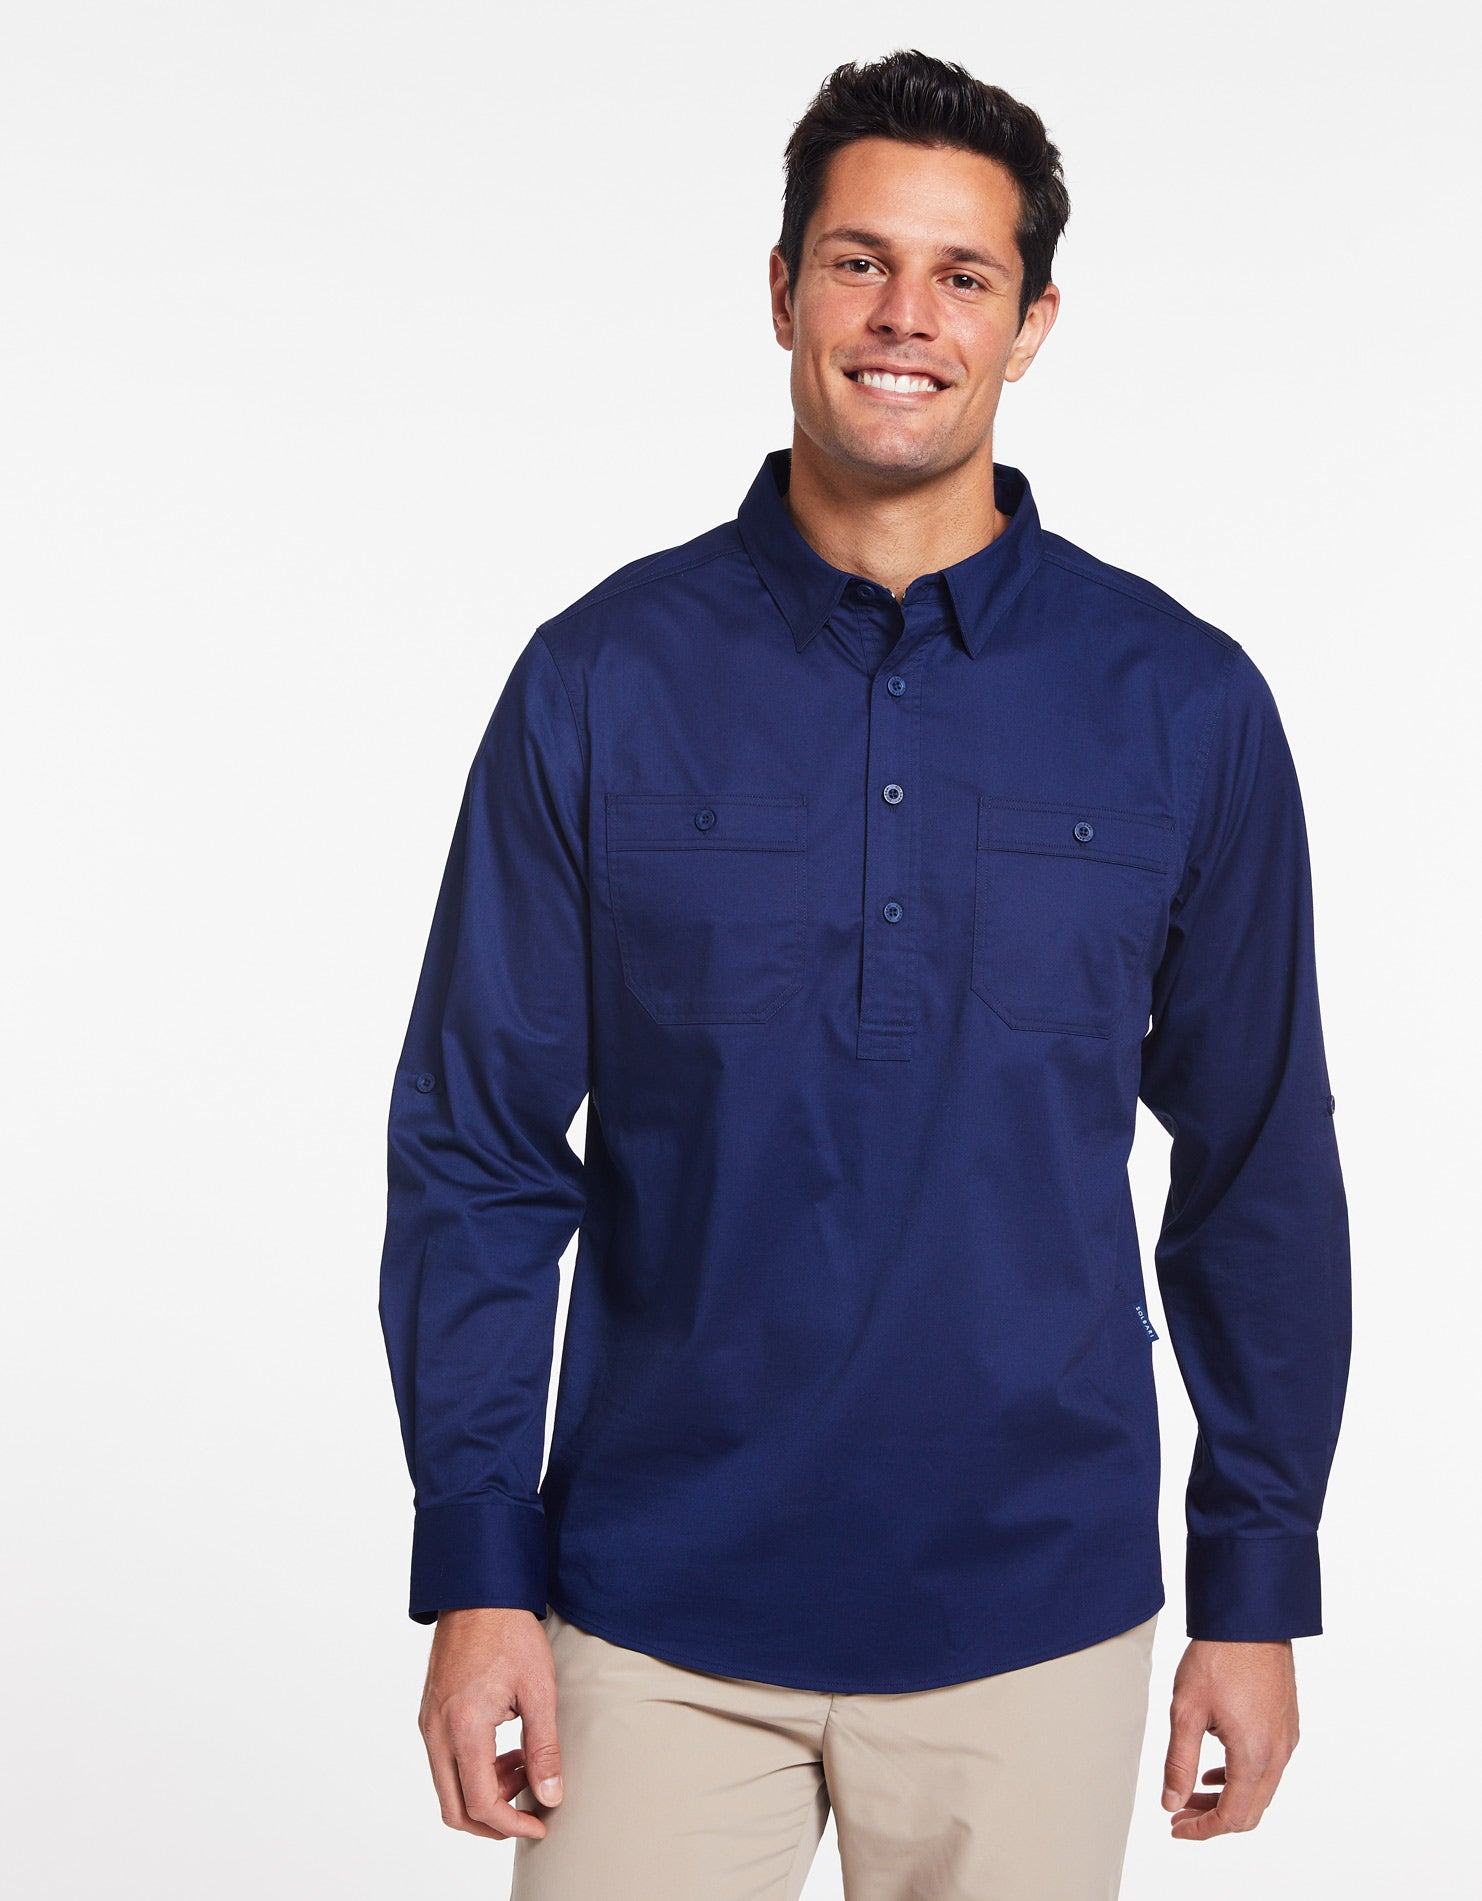 Solbari Sun Protection Men's UPF50+ Outback Half Placket Shirt in Navy Technicool Collection